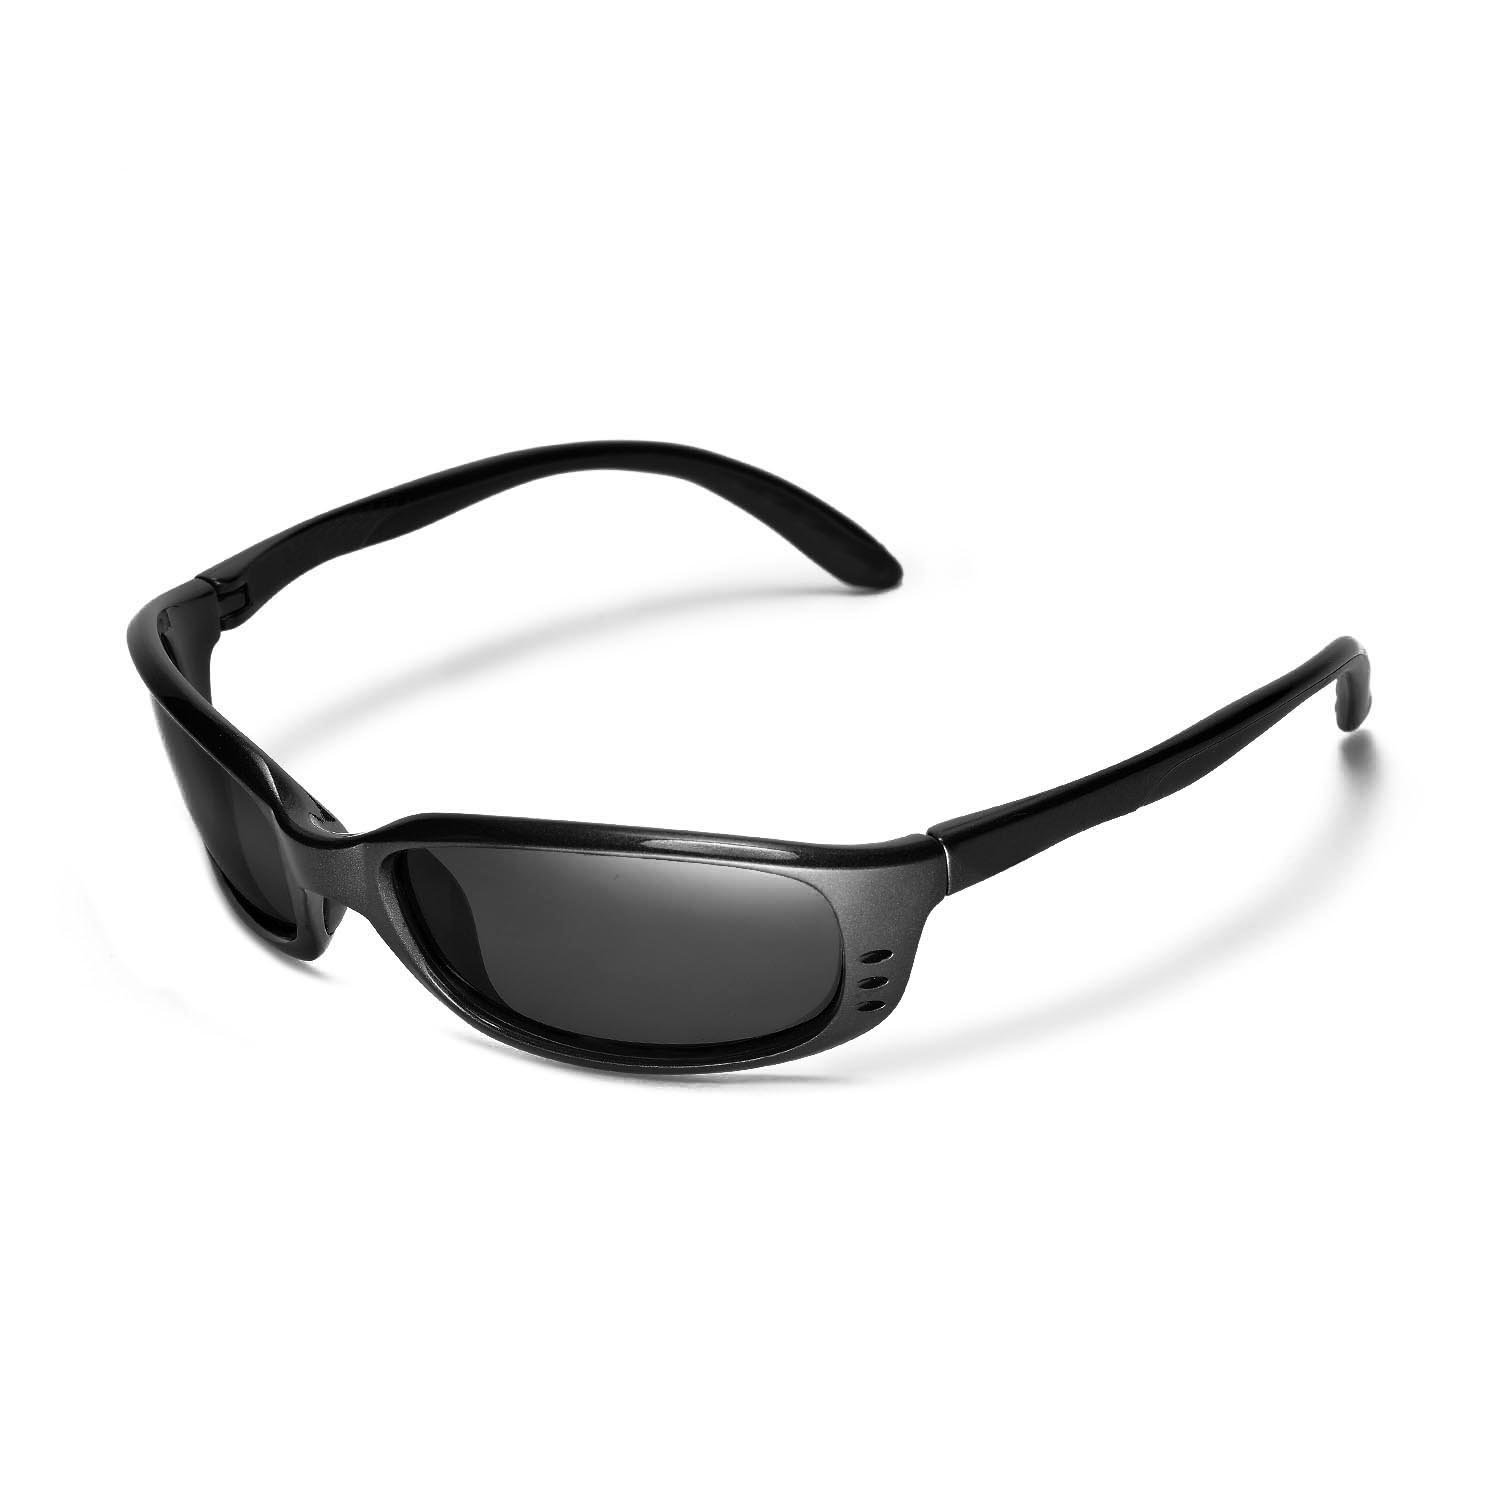 505c5cf0c1 Amazon.com  Walleva Replacement Lenses for Costa Del Mar Brine Sunglasses -  Multiple Options Available (Black - Polarized)  Clothing